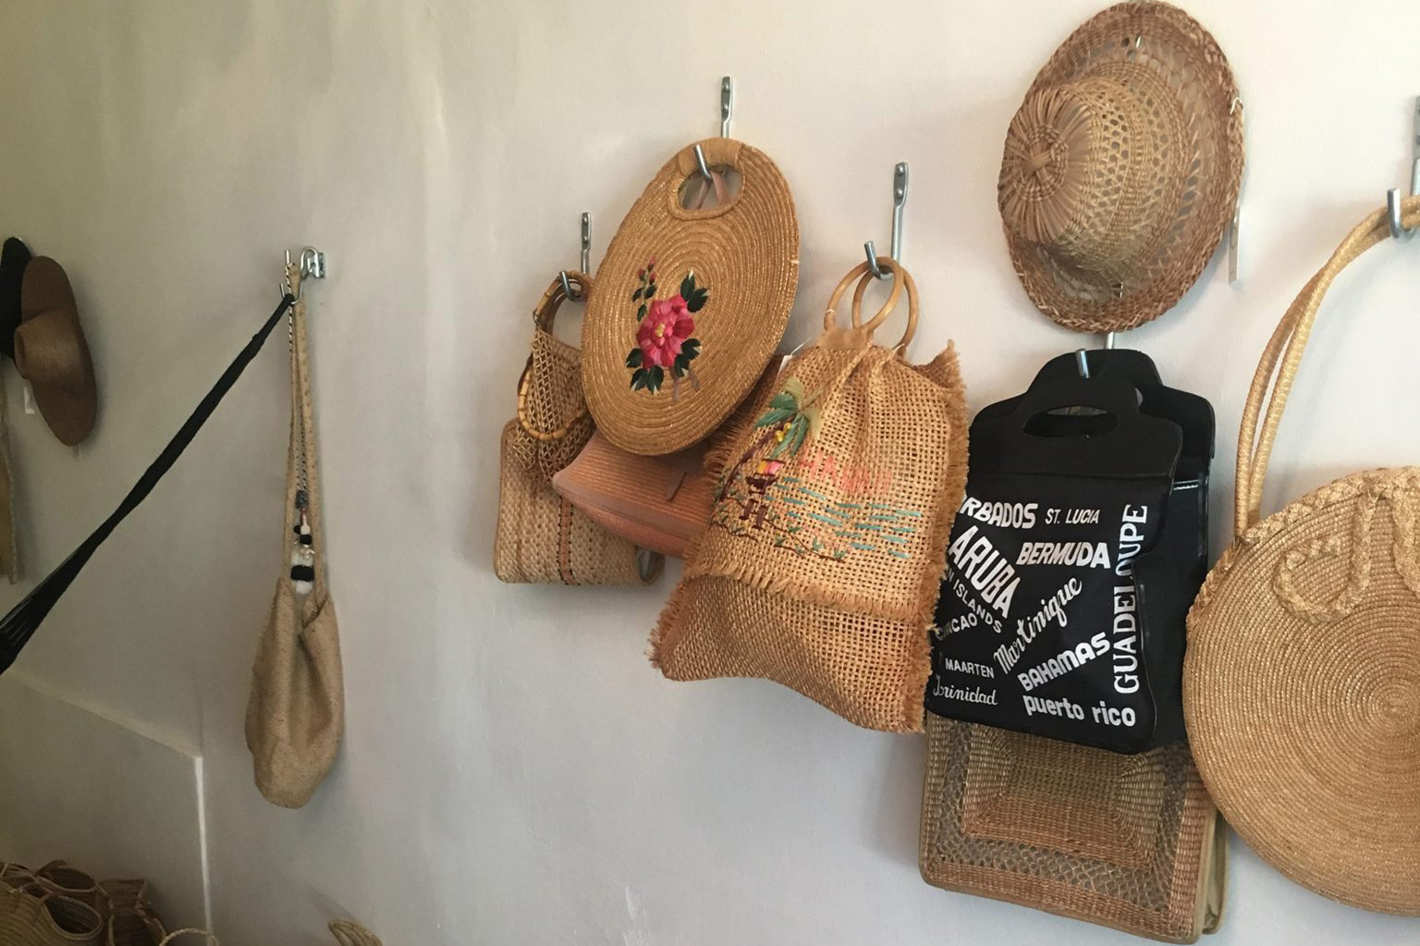 c93f77449e57 How to Shop Like a Local in San Juan